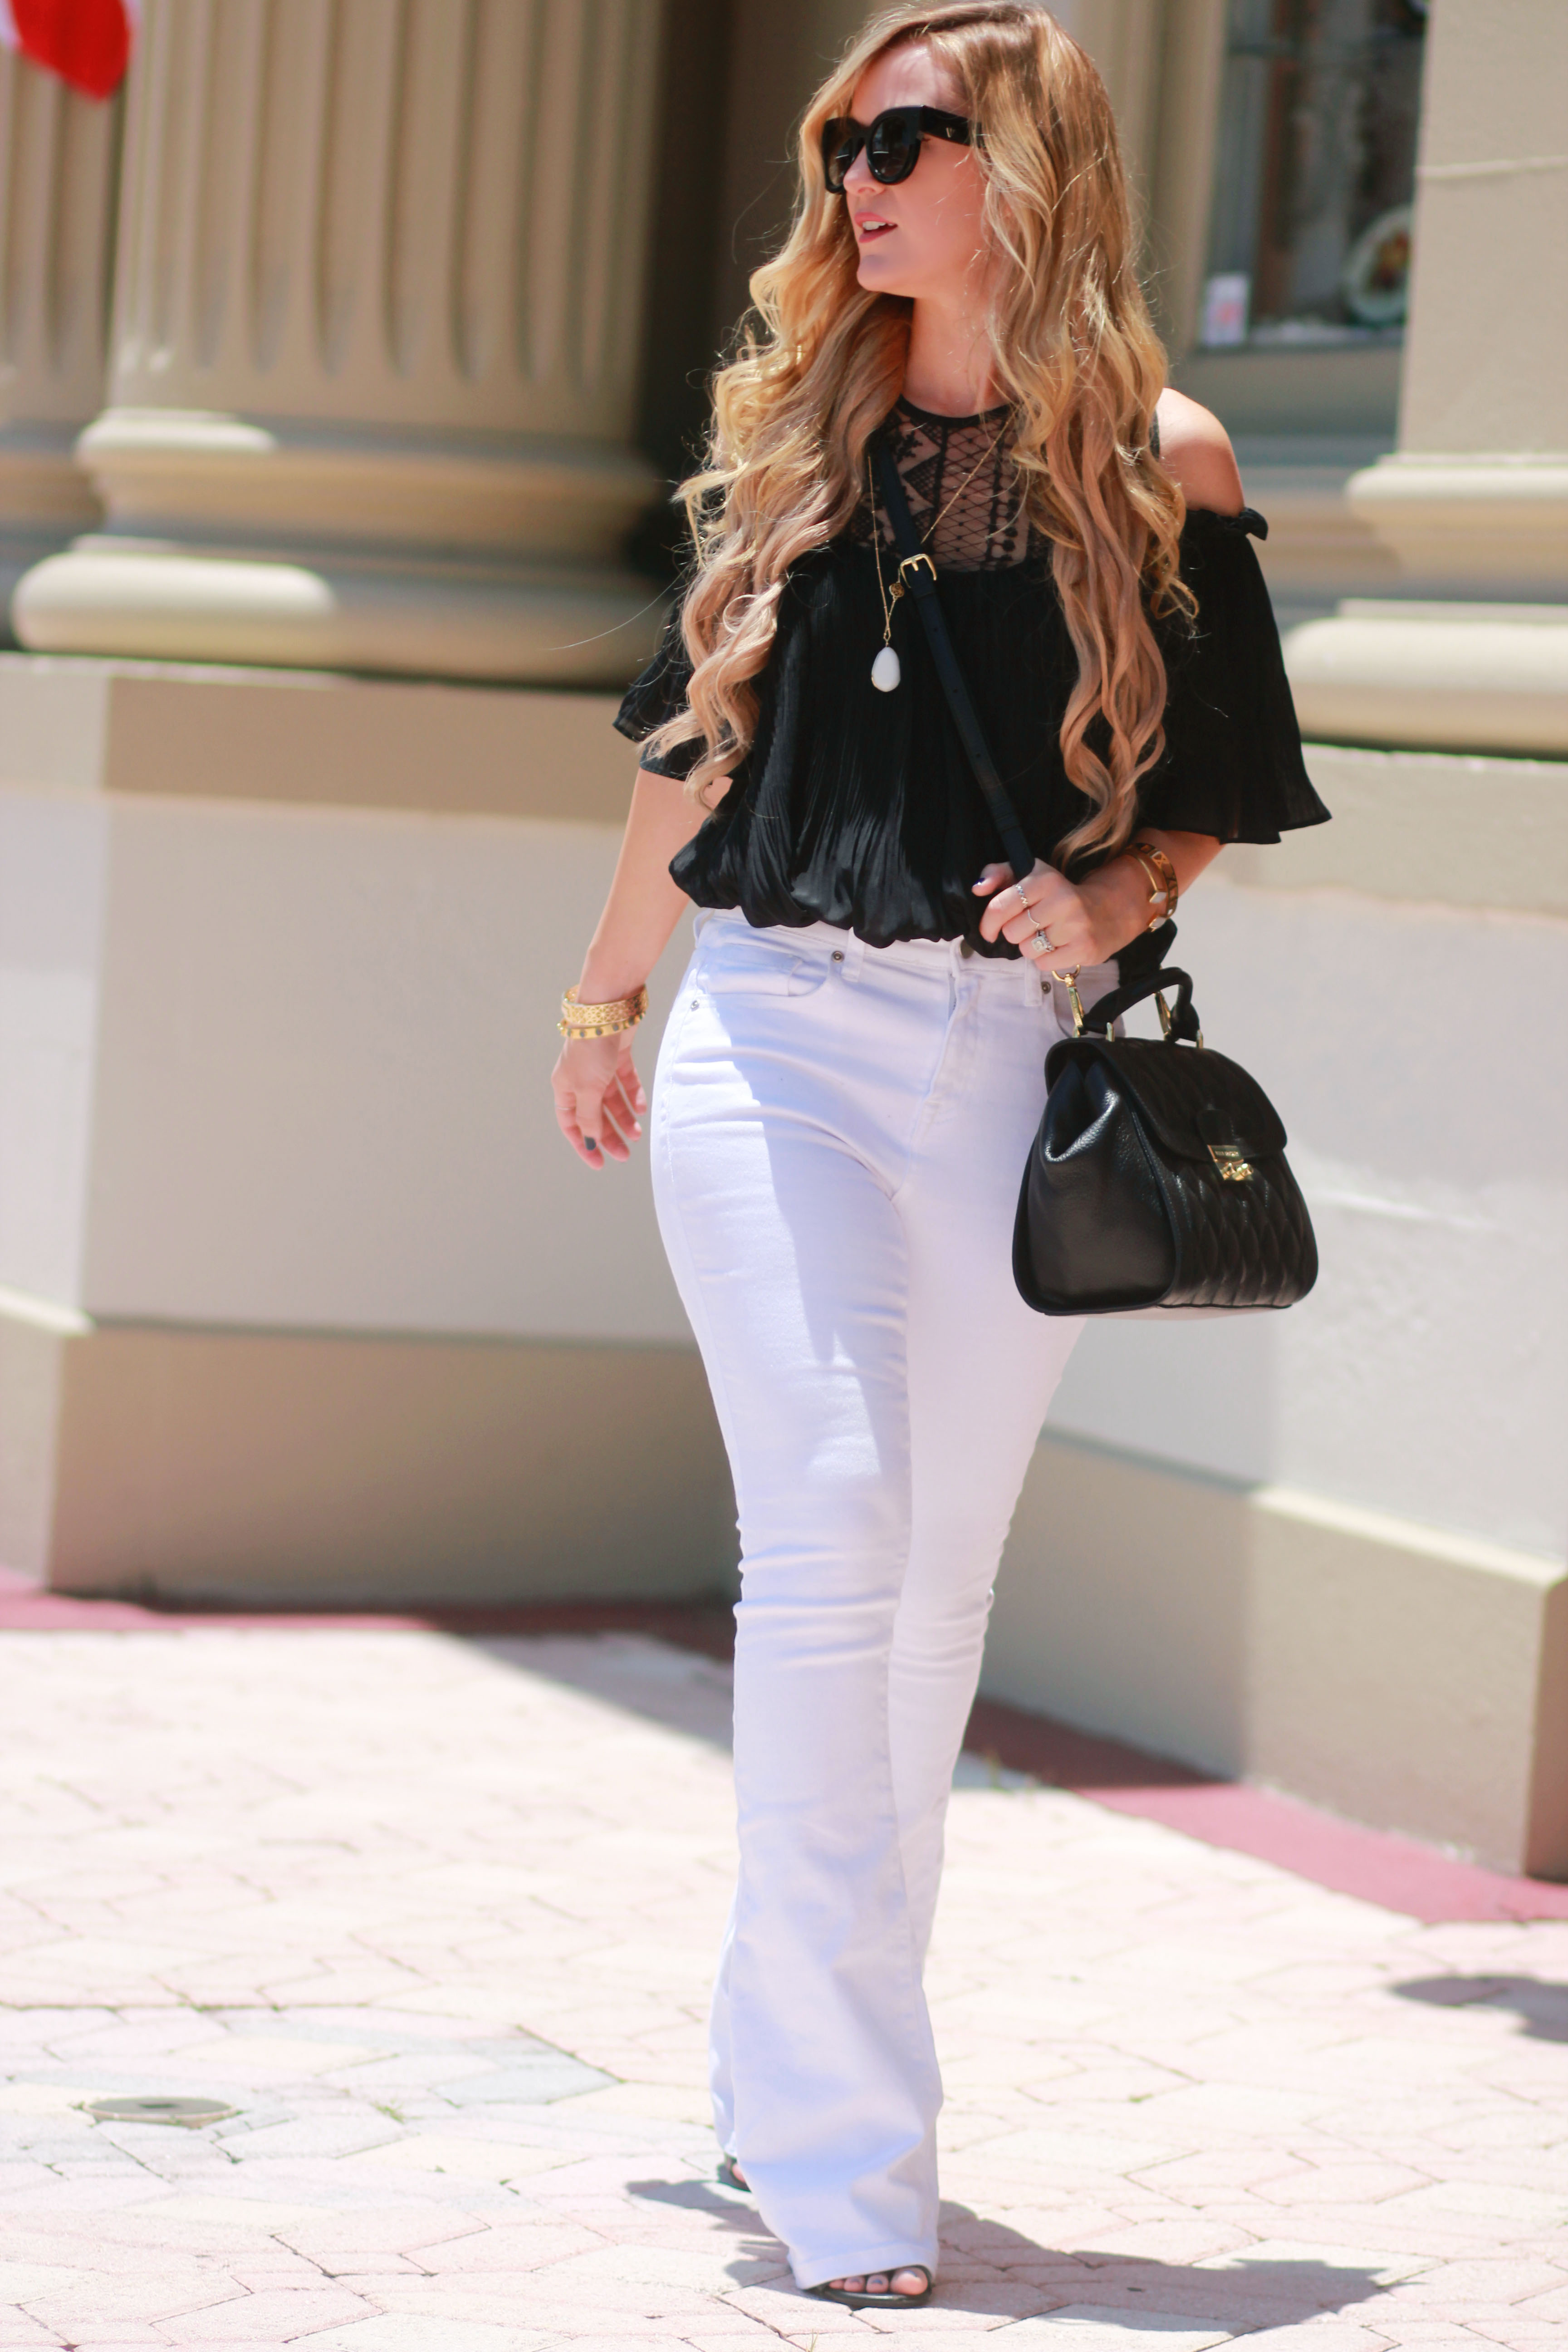 879512bd20 Orlando Florida fashion blog styles black and white date night outfit with  Shein off the shoulder